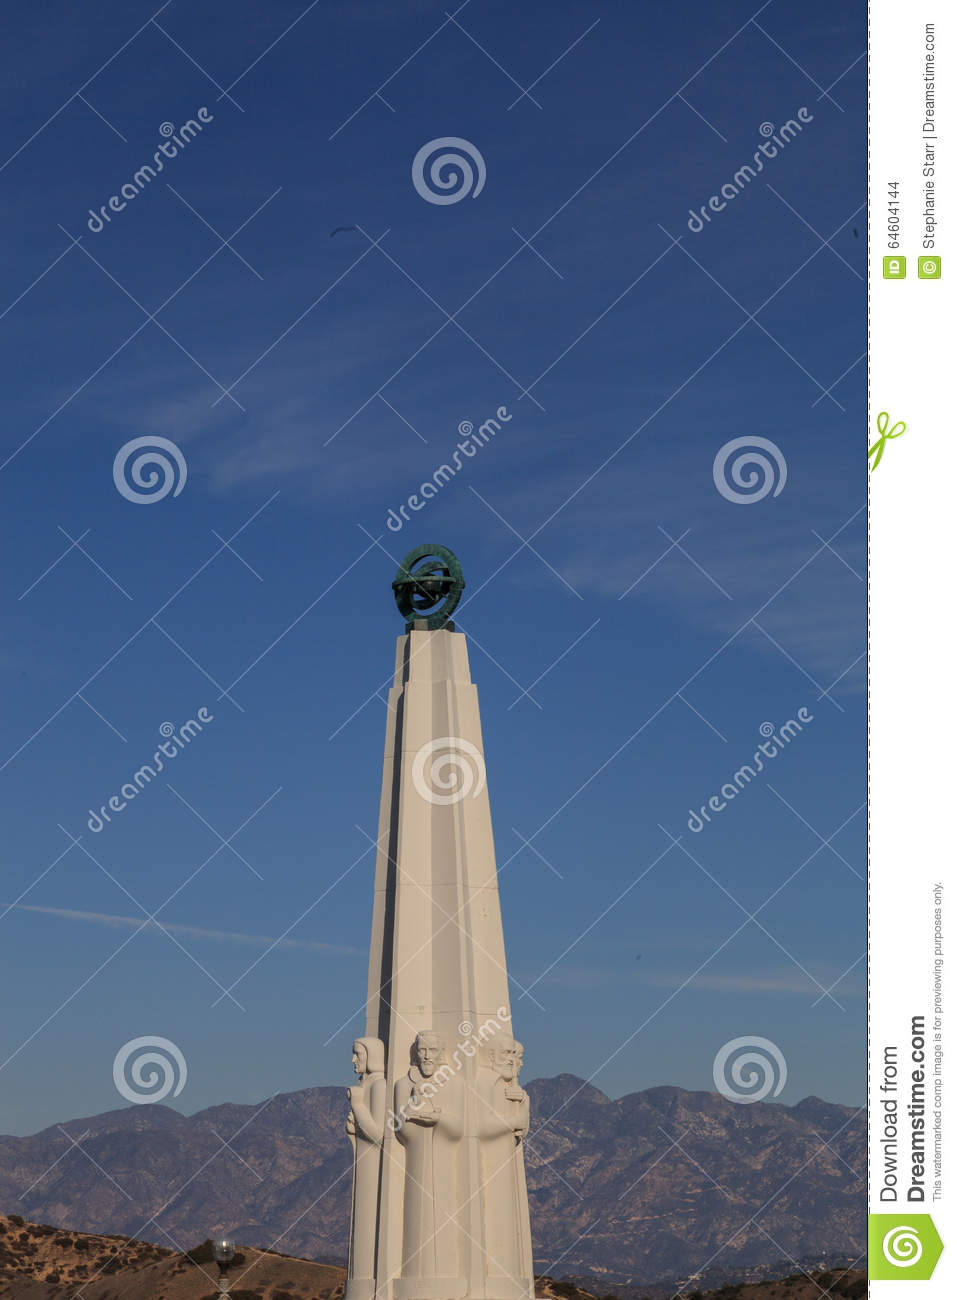 Astronomenmonument in Griffith Park in Griffith Observatory, Los Angeles